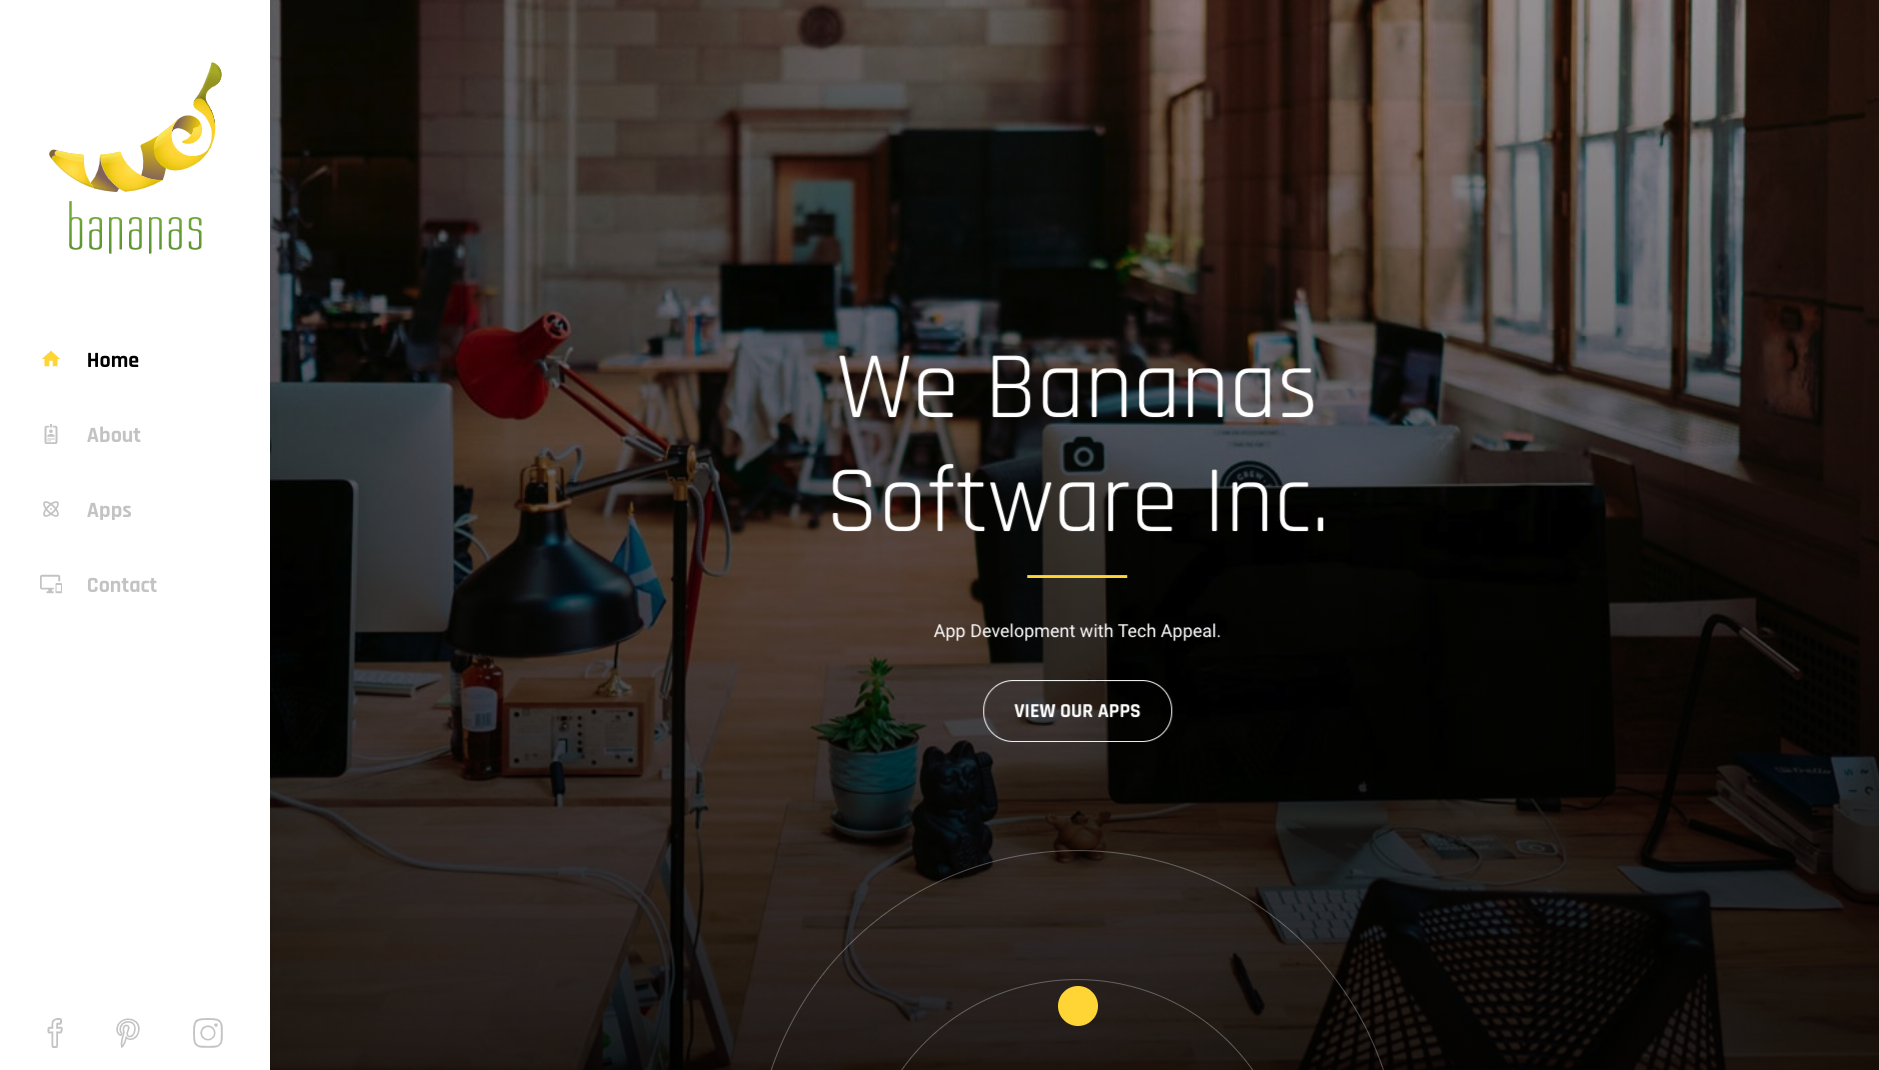 We Bananas Software Inc